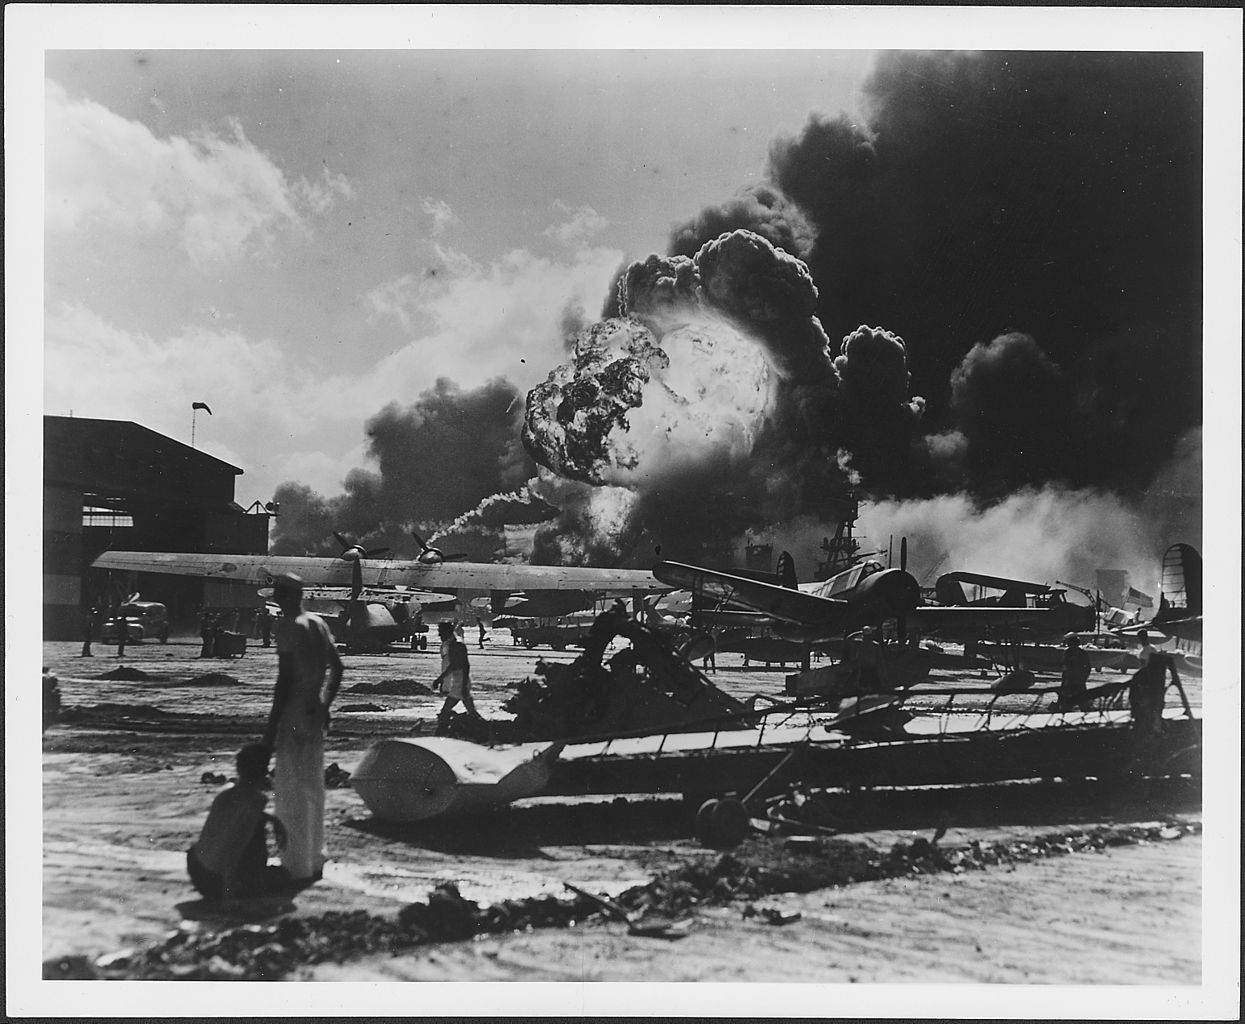 Photograph of the wreckage-strewn Naval Air Station at Pearl Harbor following the Japanese attack.